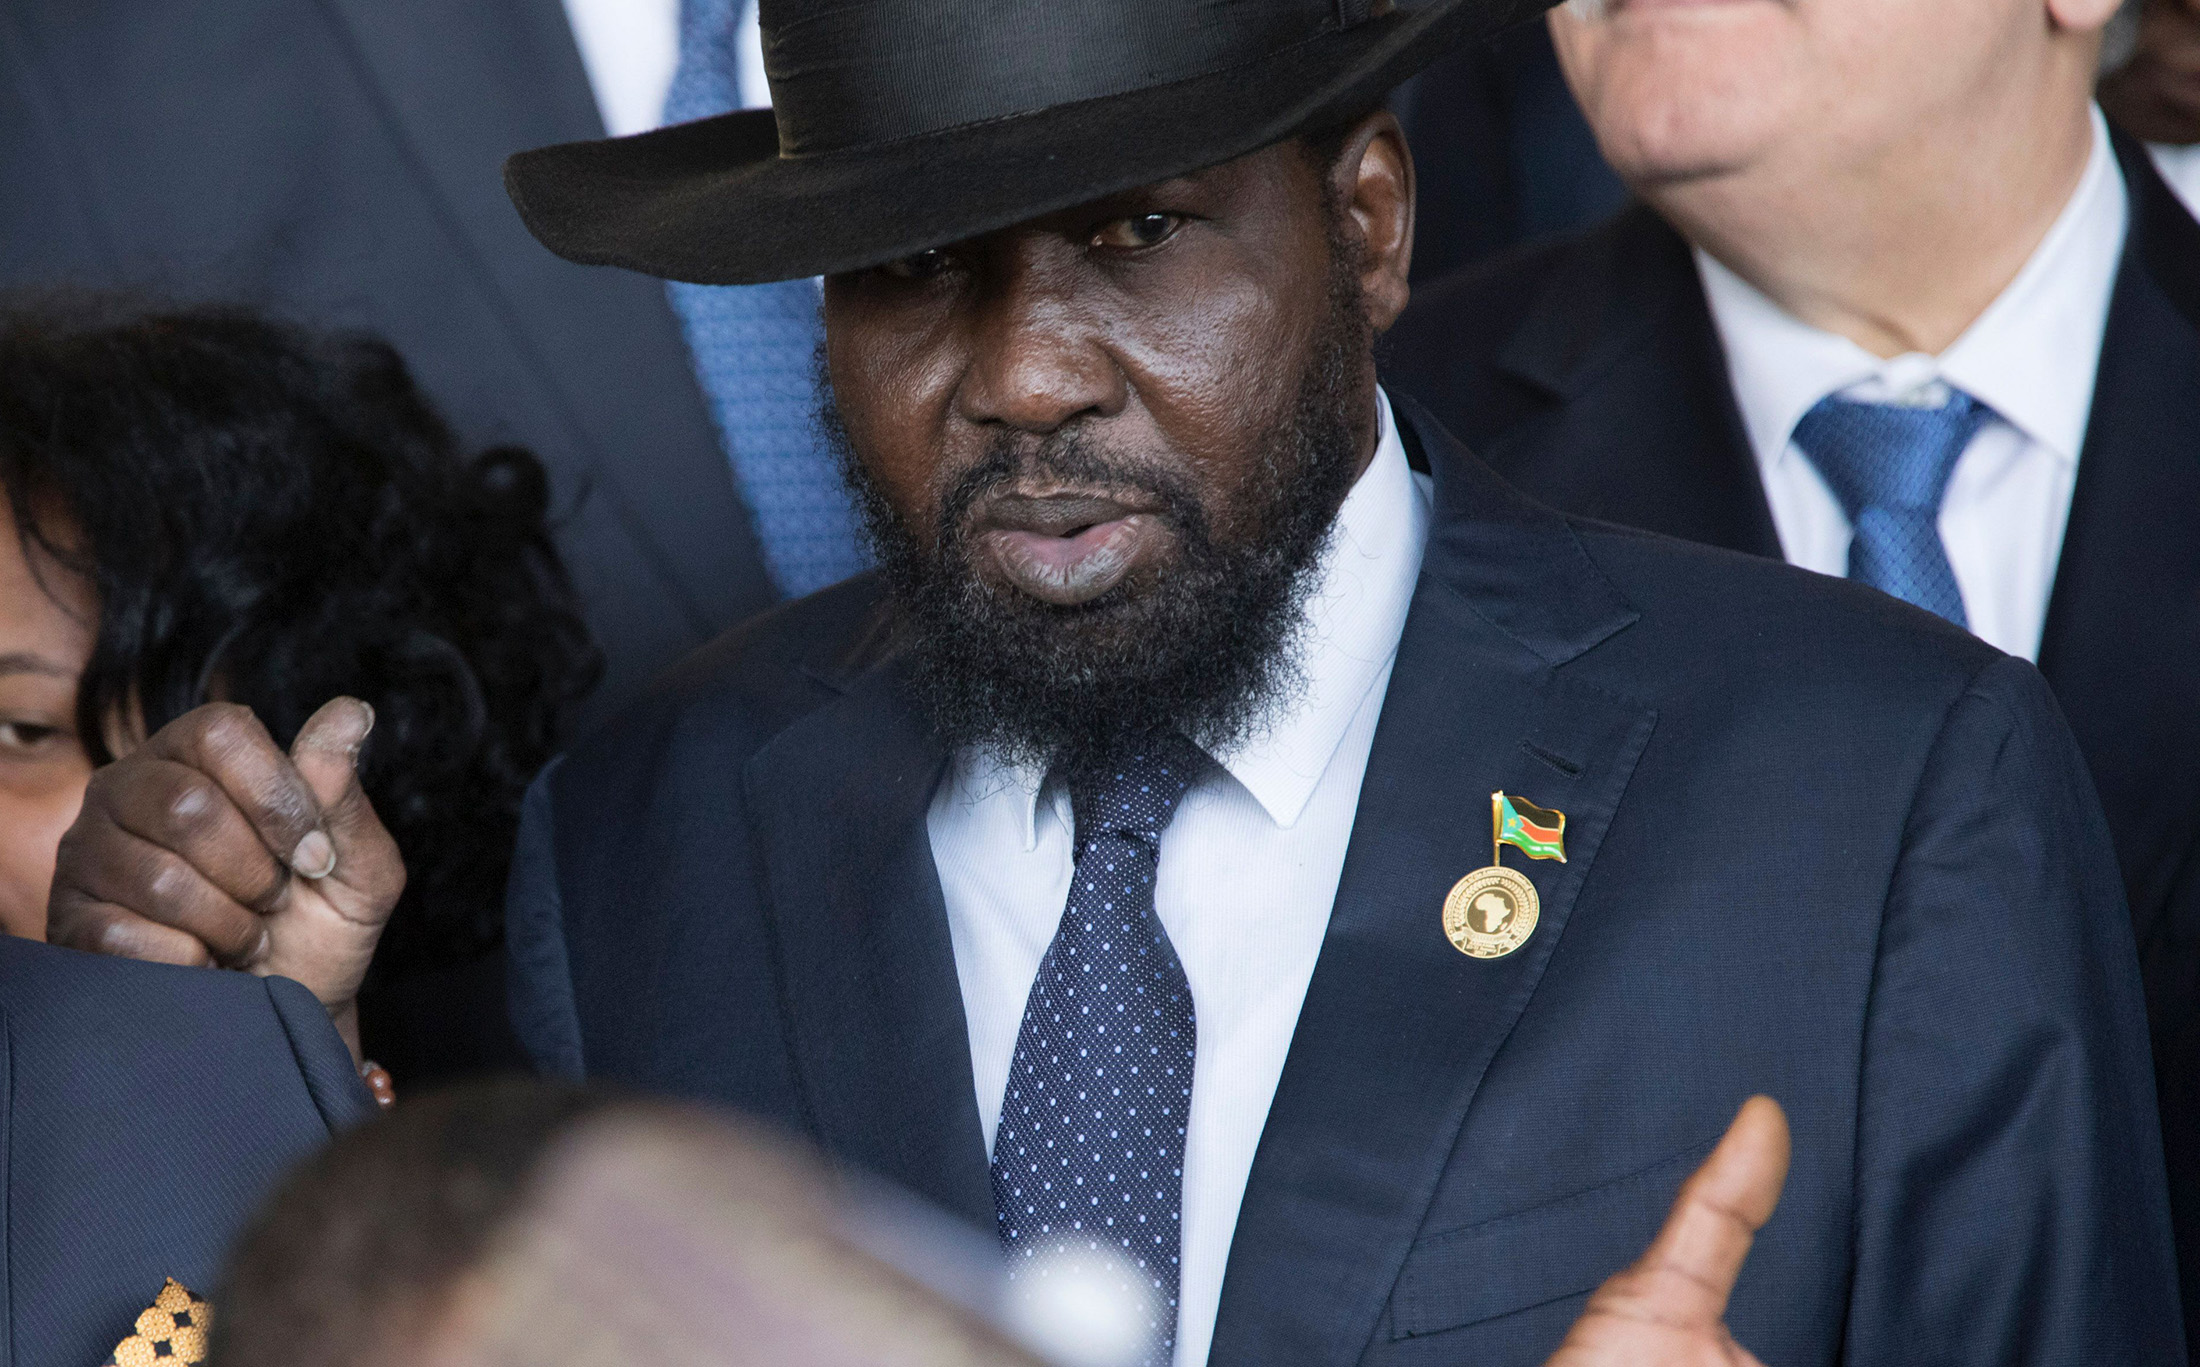 President Salva Kiir Mayardit arrives for the 28th African Union summit in Addis Ababa on January 30, 2017. [Photo by Zacharias Abubeker/AFP/Getty Images)